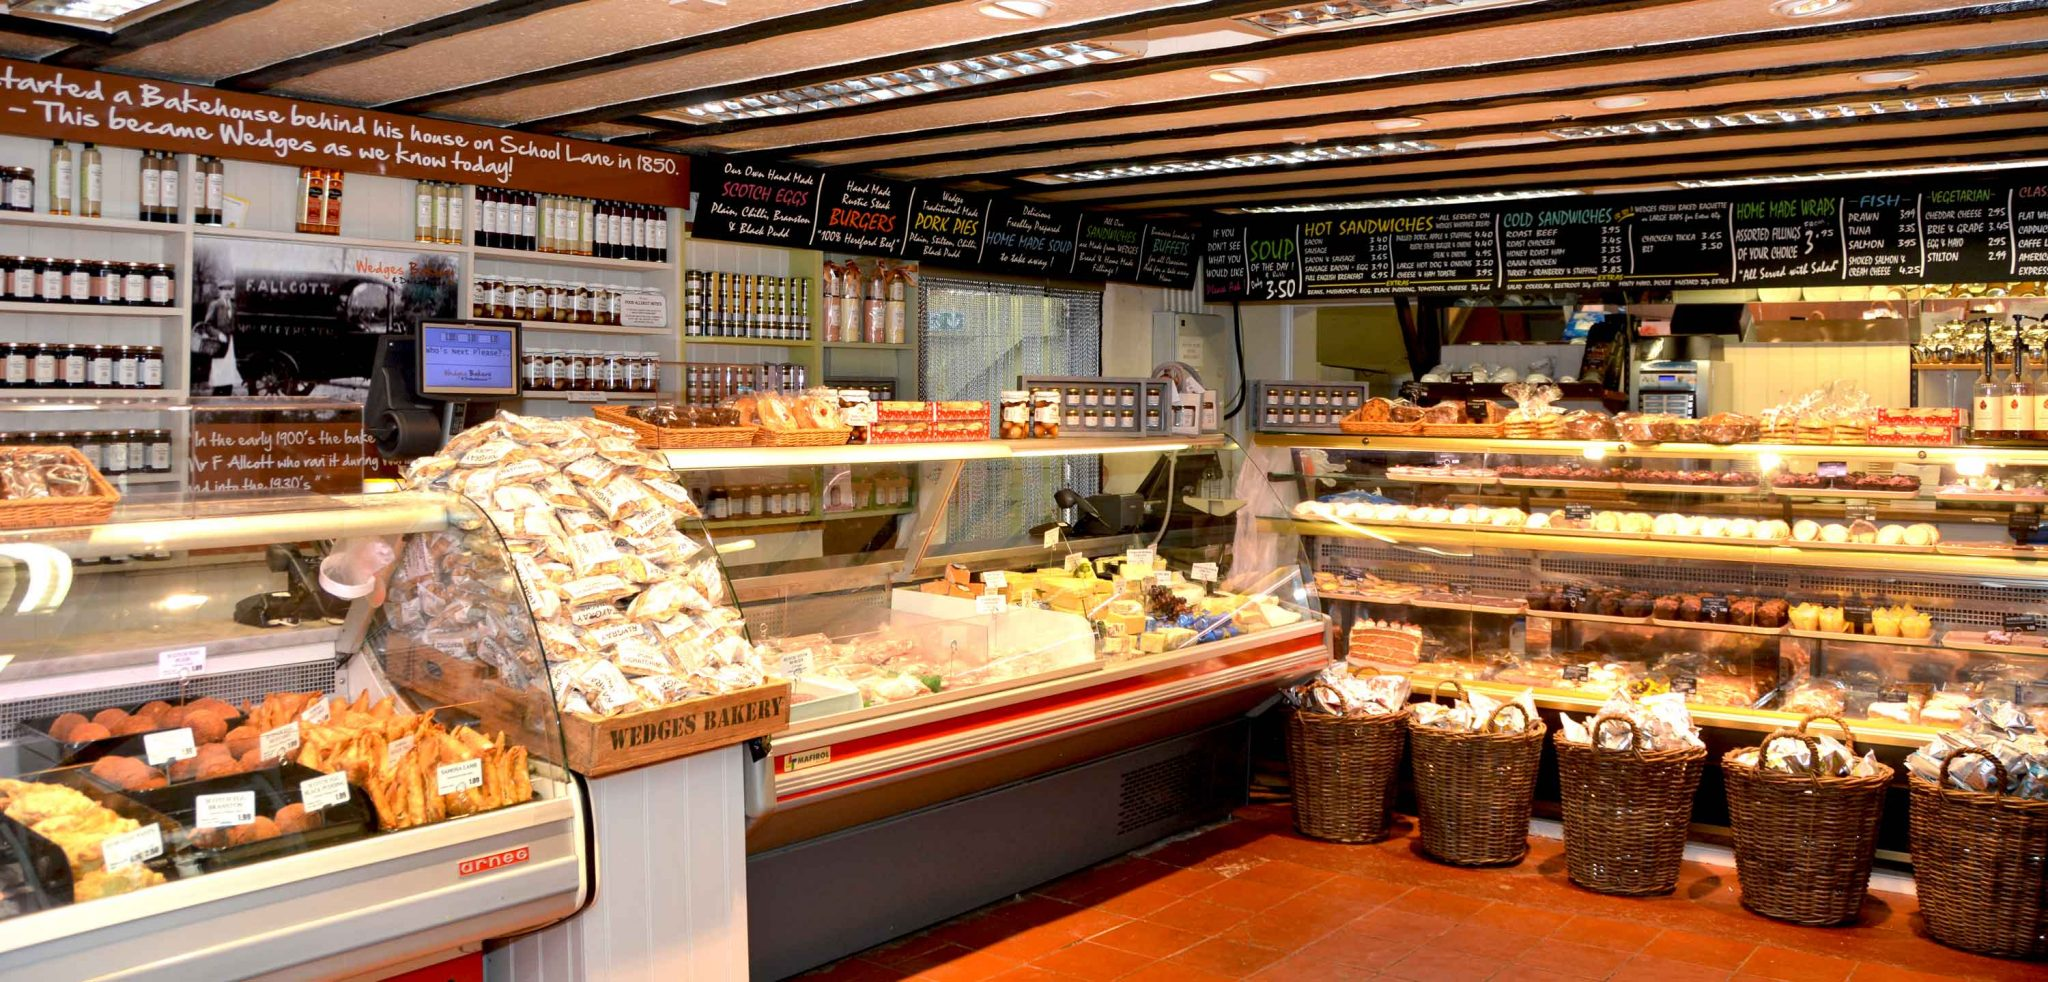 Wedges Bakery at Hockley Heath